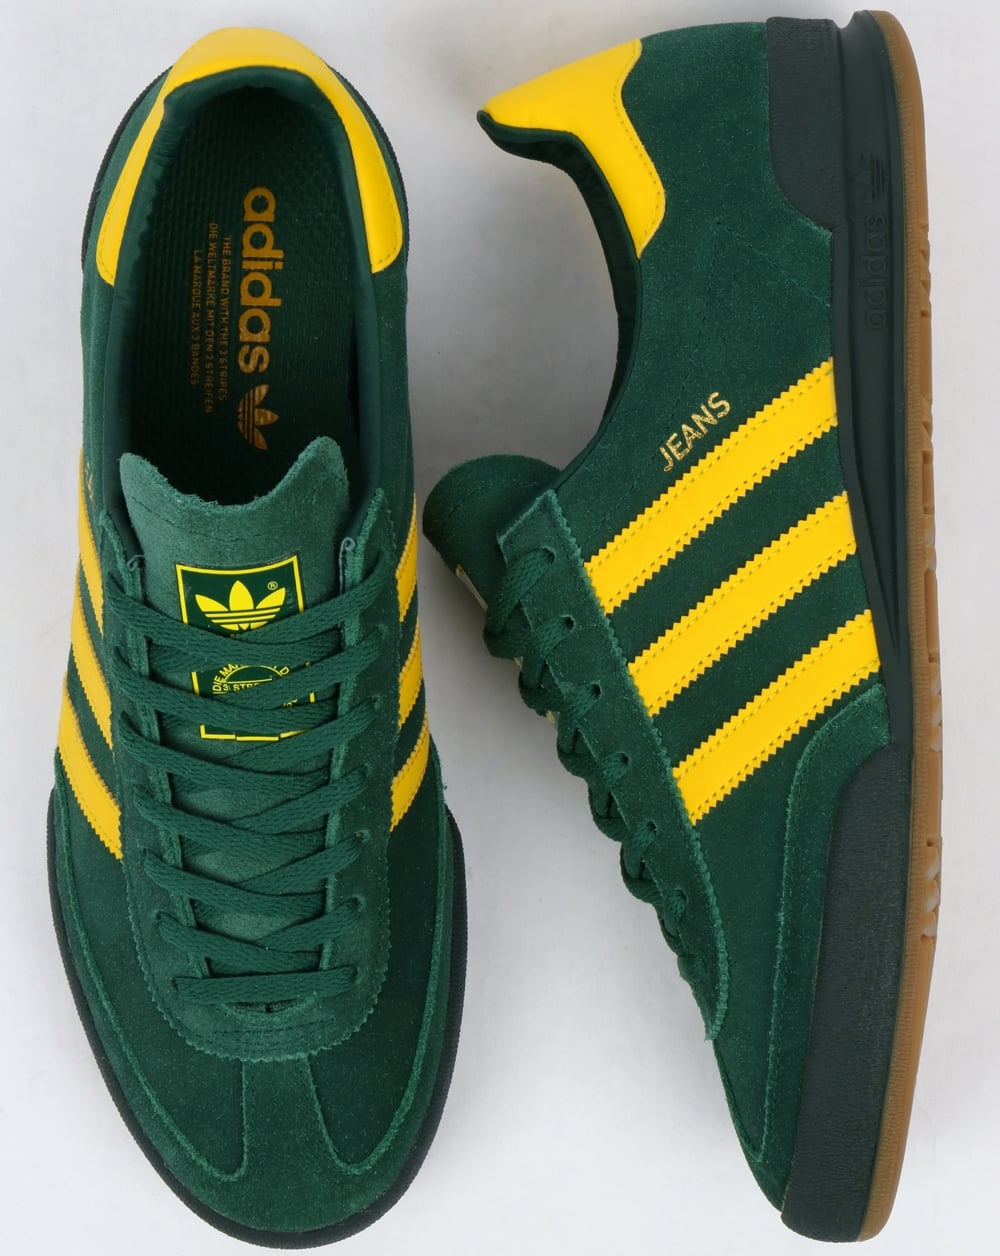 Adidas Jeans Trainers Green,Yellow,Mk2